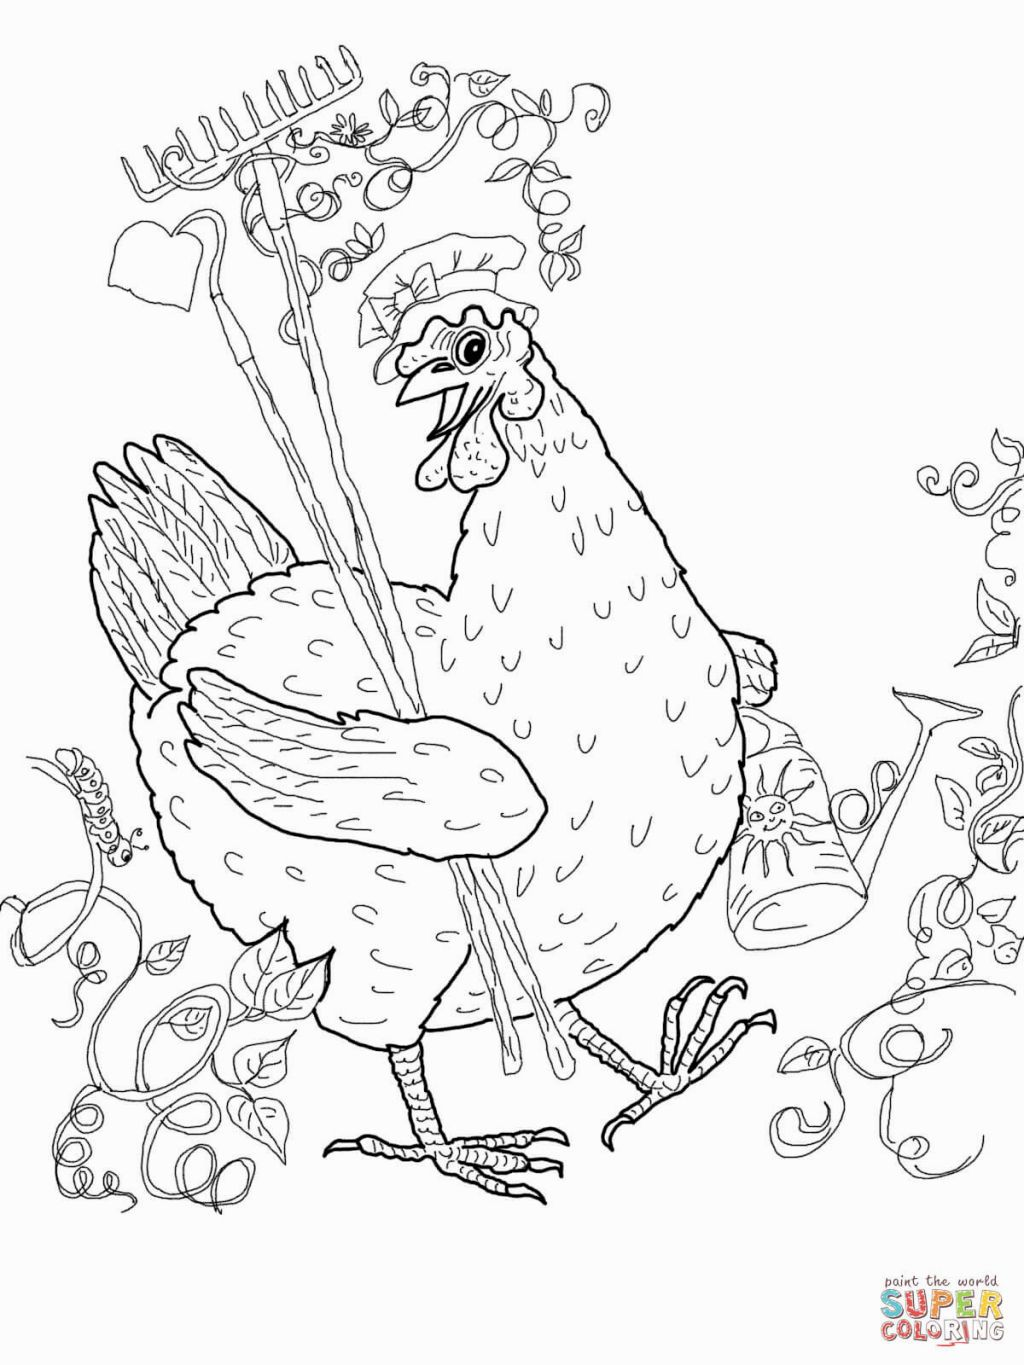 Little Red Hen Coloring Pages | Coloring Pages | Pinterest | Red hen ...